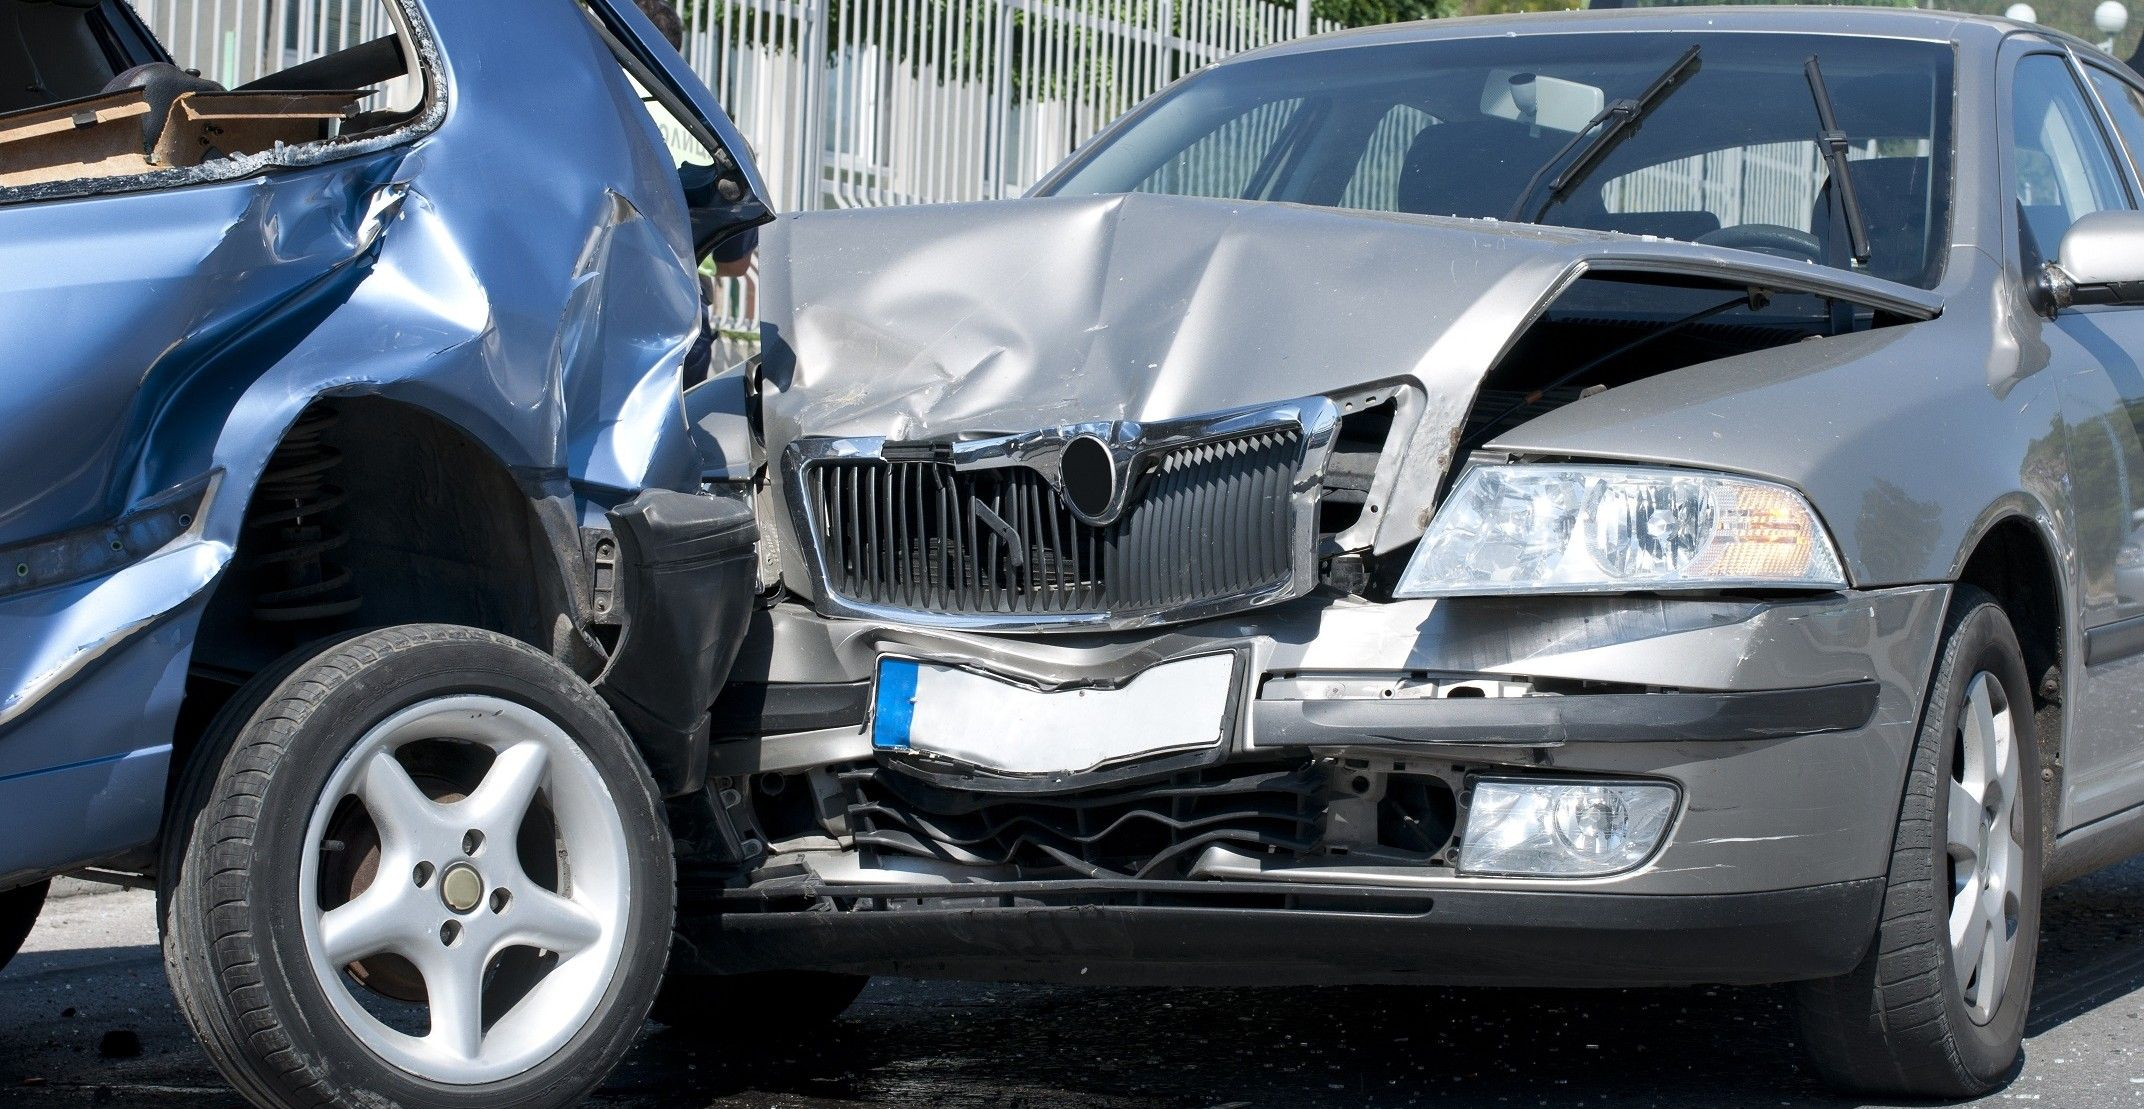 Getting Guideline From Injury Lawyers For Road Traffic Accident Auto Mobile Accident Is Not Excepti Car Accident Injuries Car Accident Lawyer Accident Injury